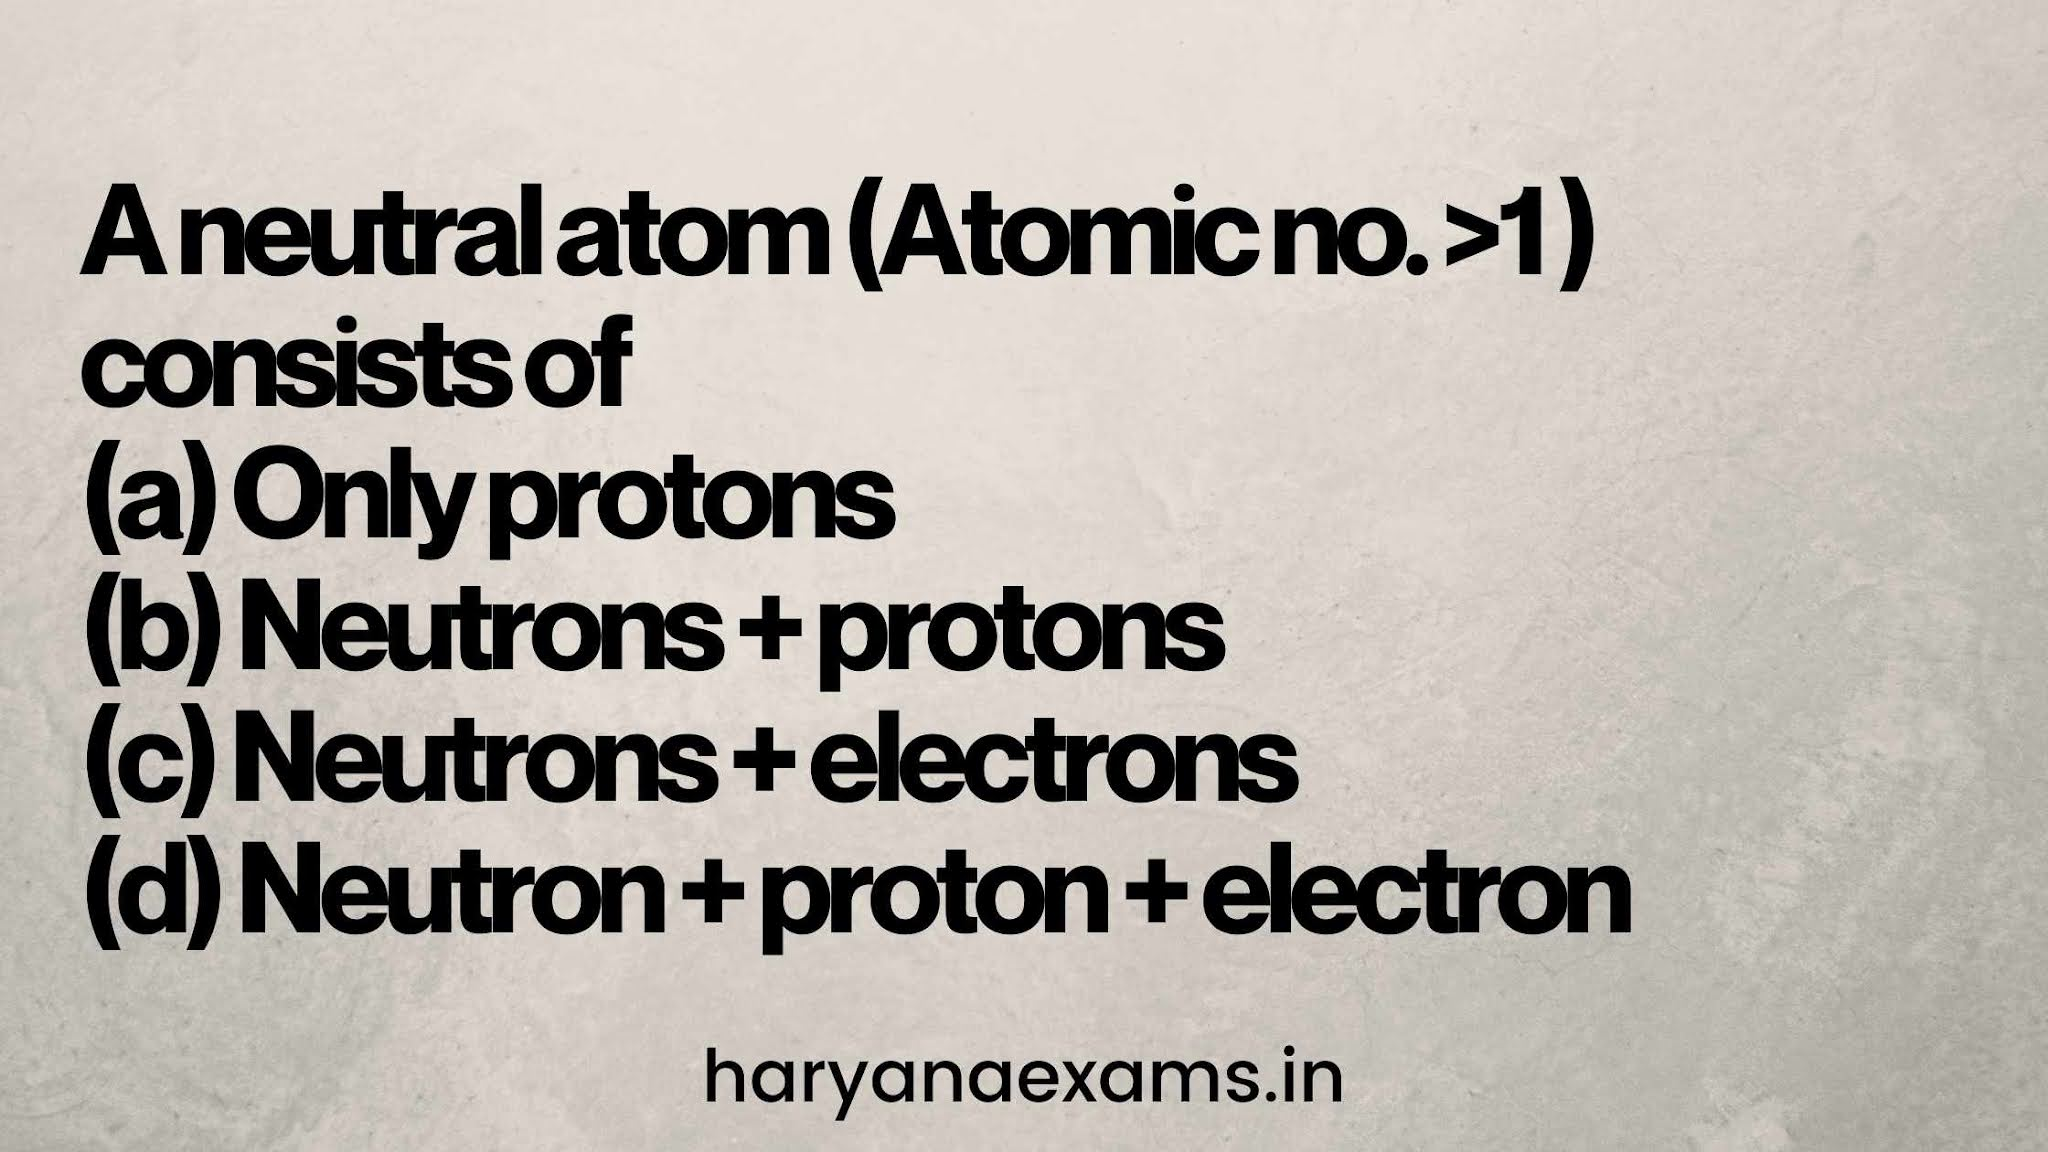 A neutral atom (Atomic no. >1 ) consists of